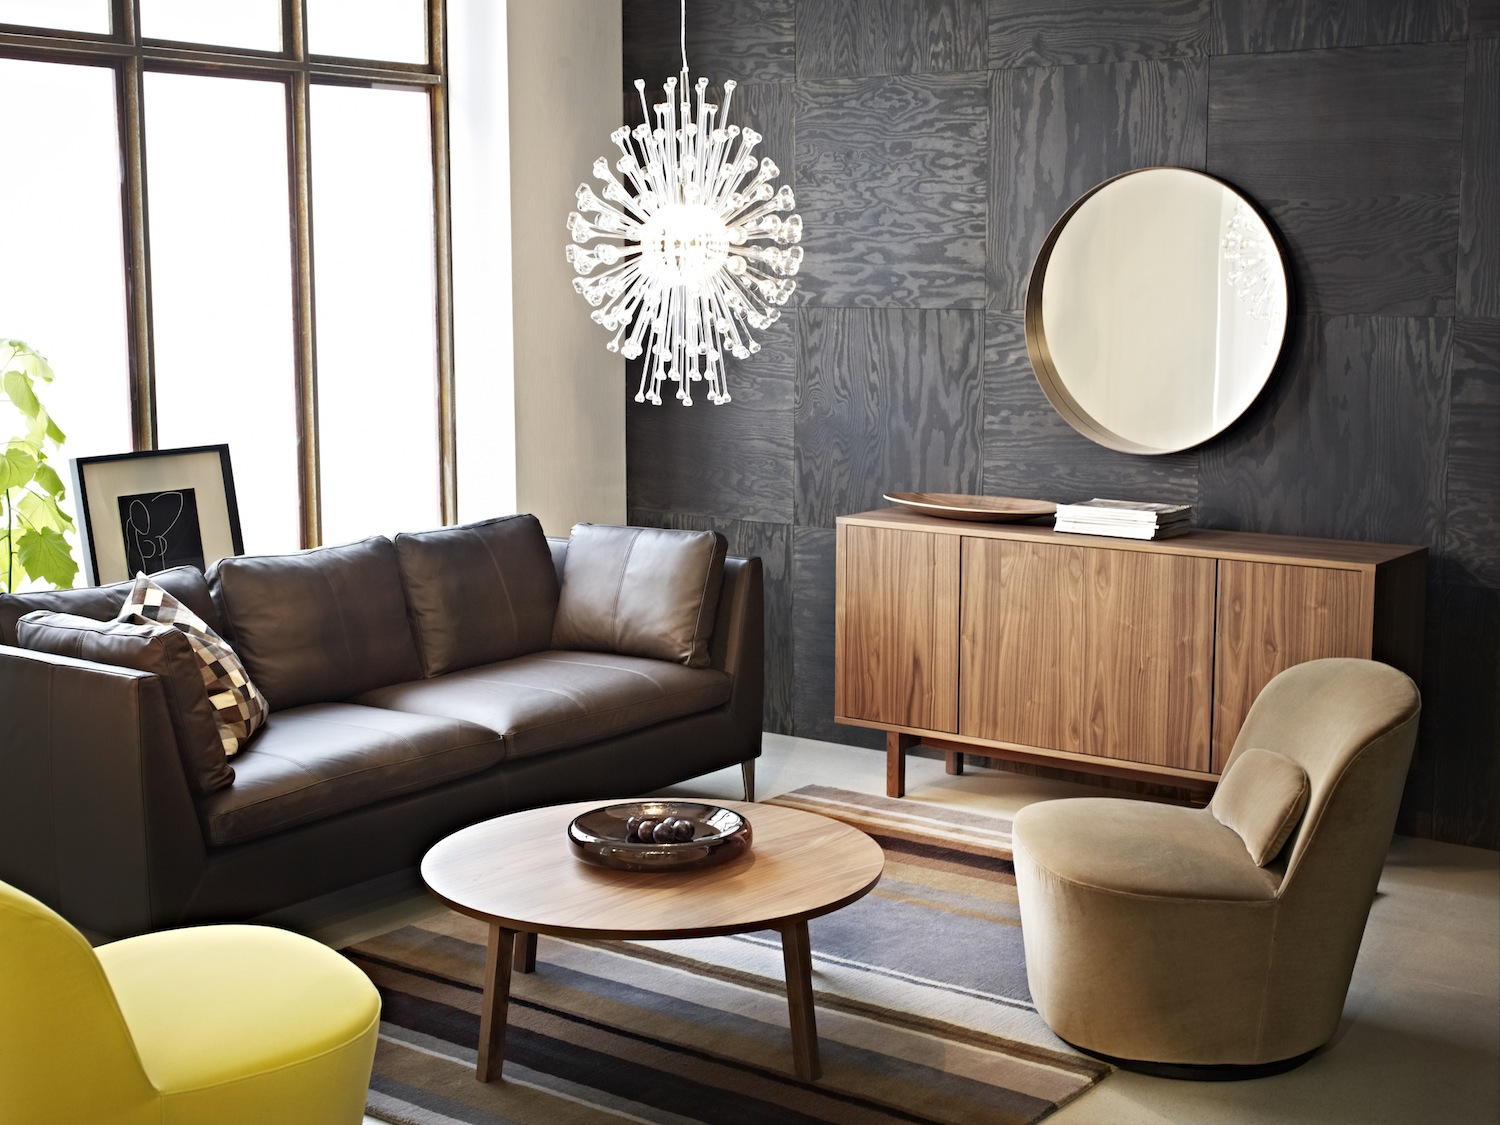 Credenza Ikea Stockholm : Ikea stockholm couchtisch a big generous and inviting sofa